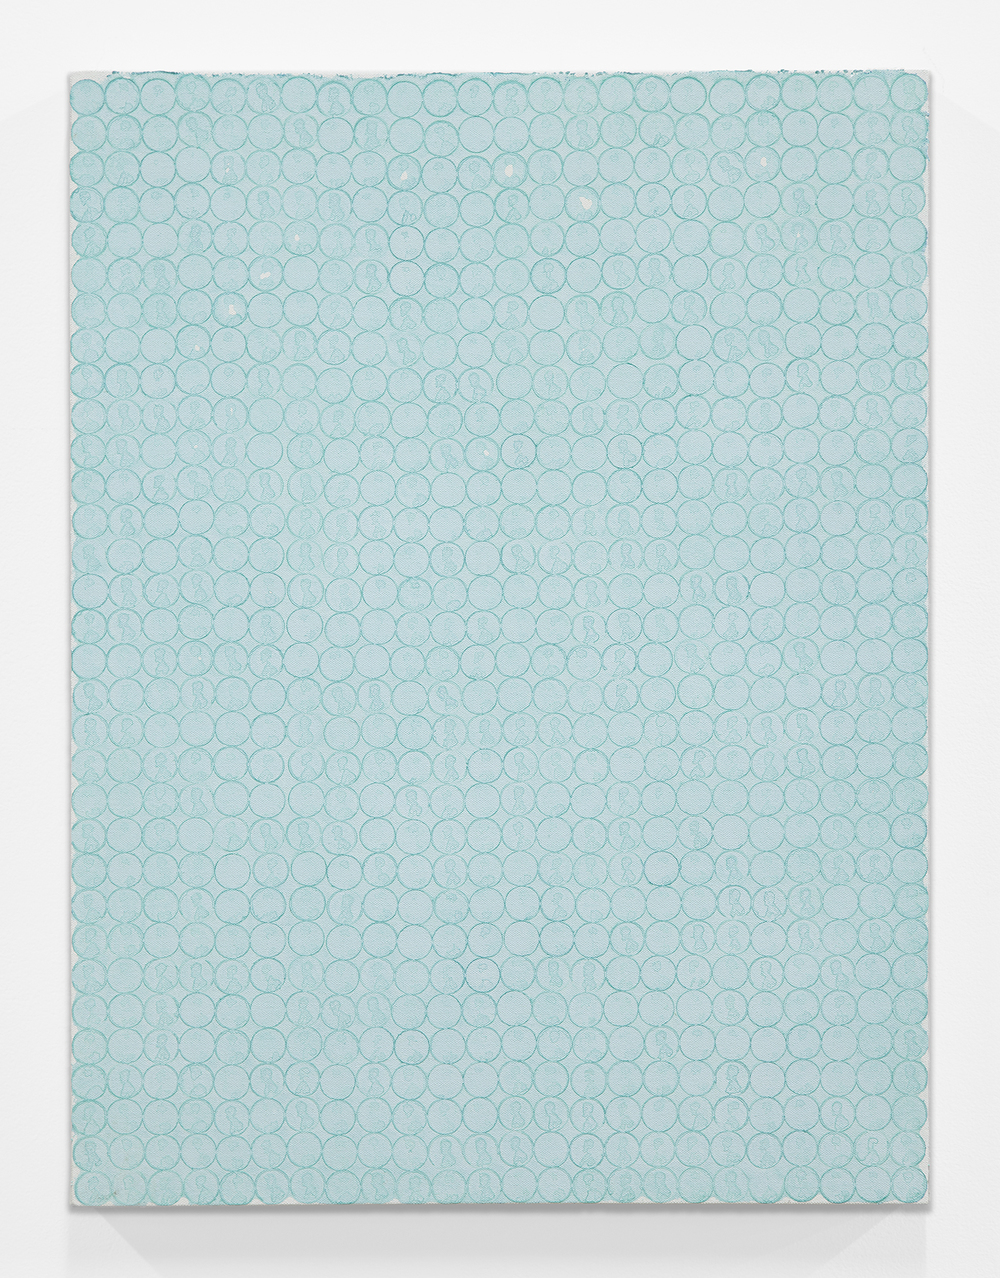 Nick Darmstaedter  Blow Dart , 2013 Oxidized copper on canvas 24 x 18 inches